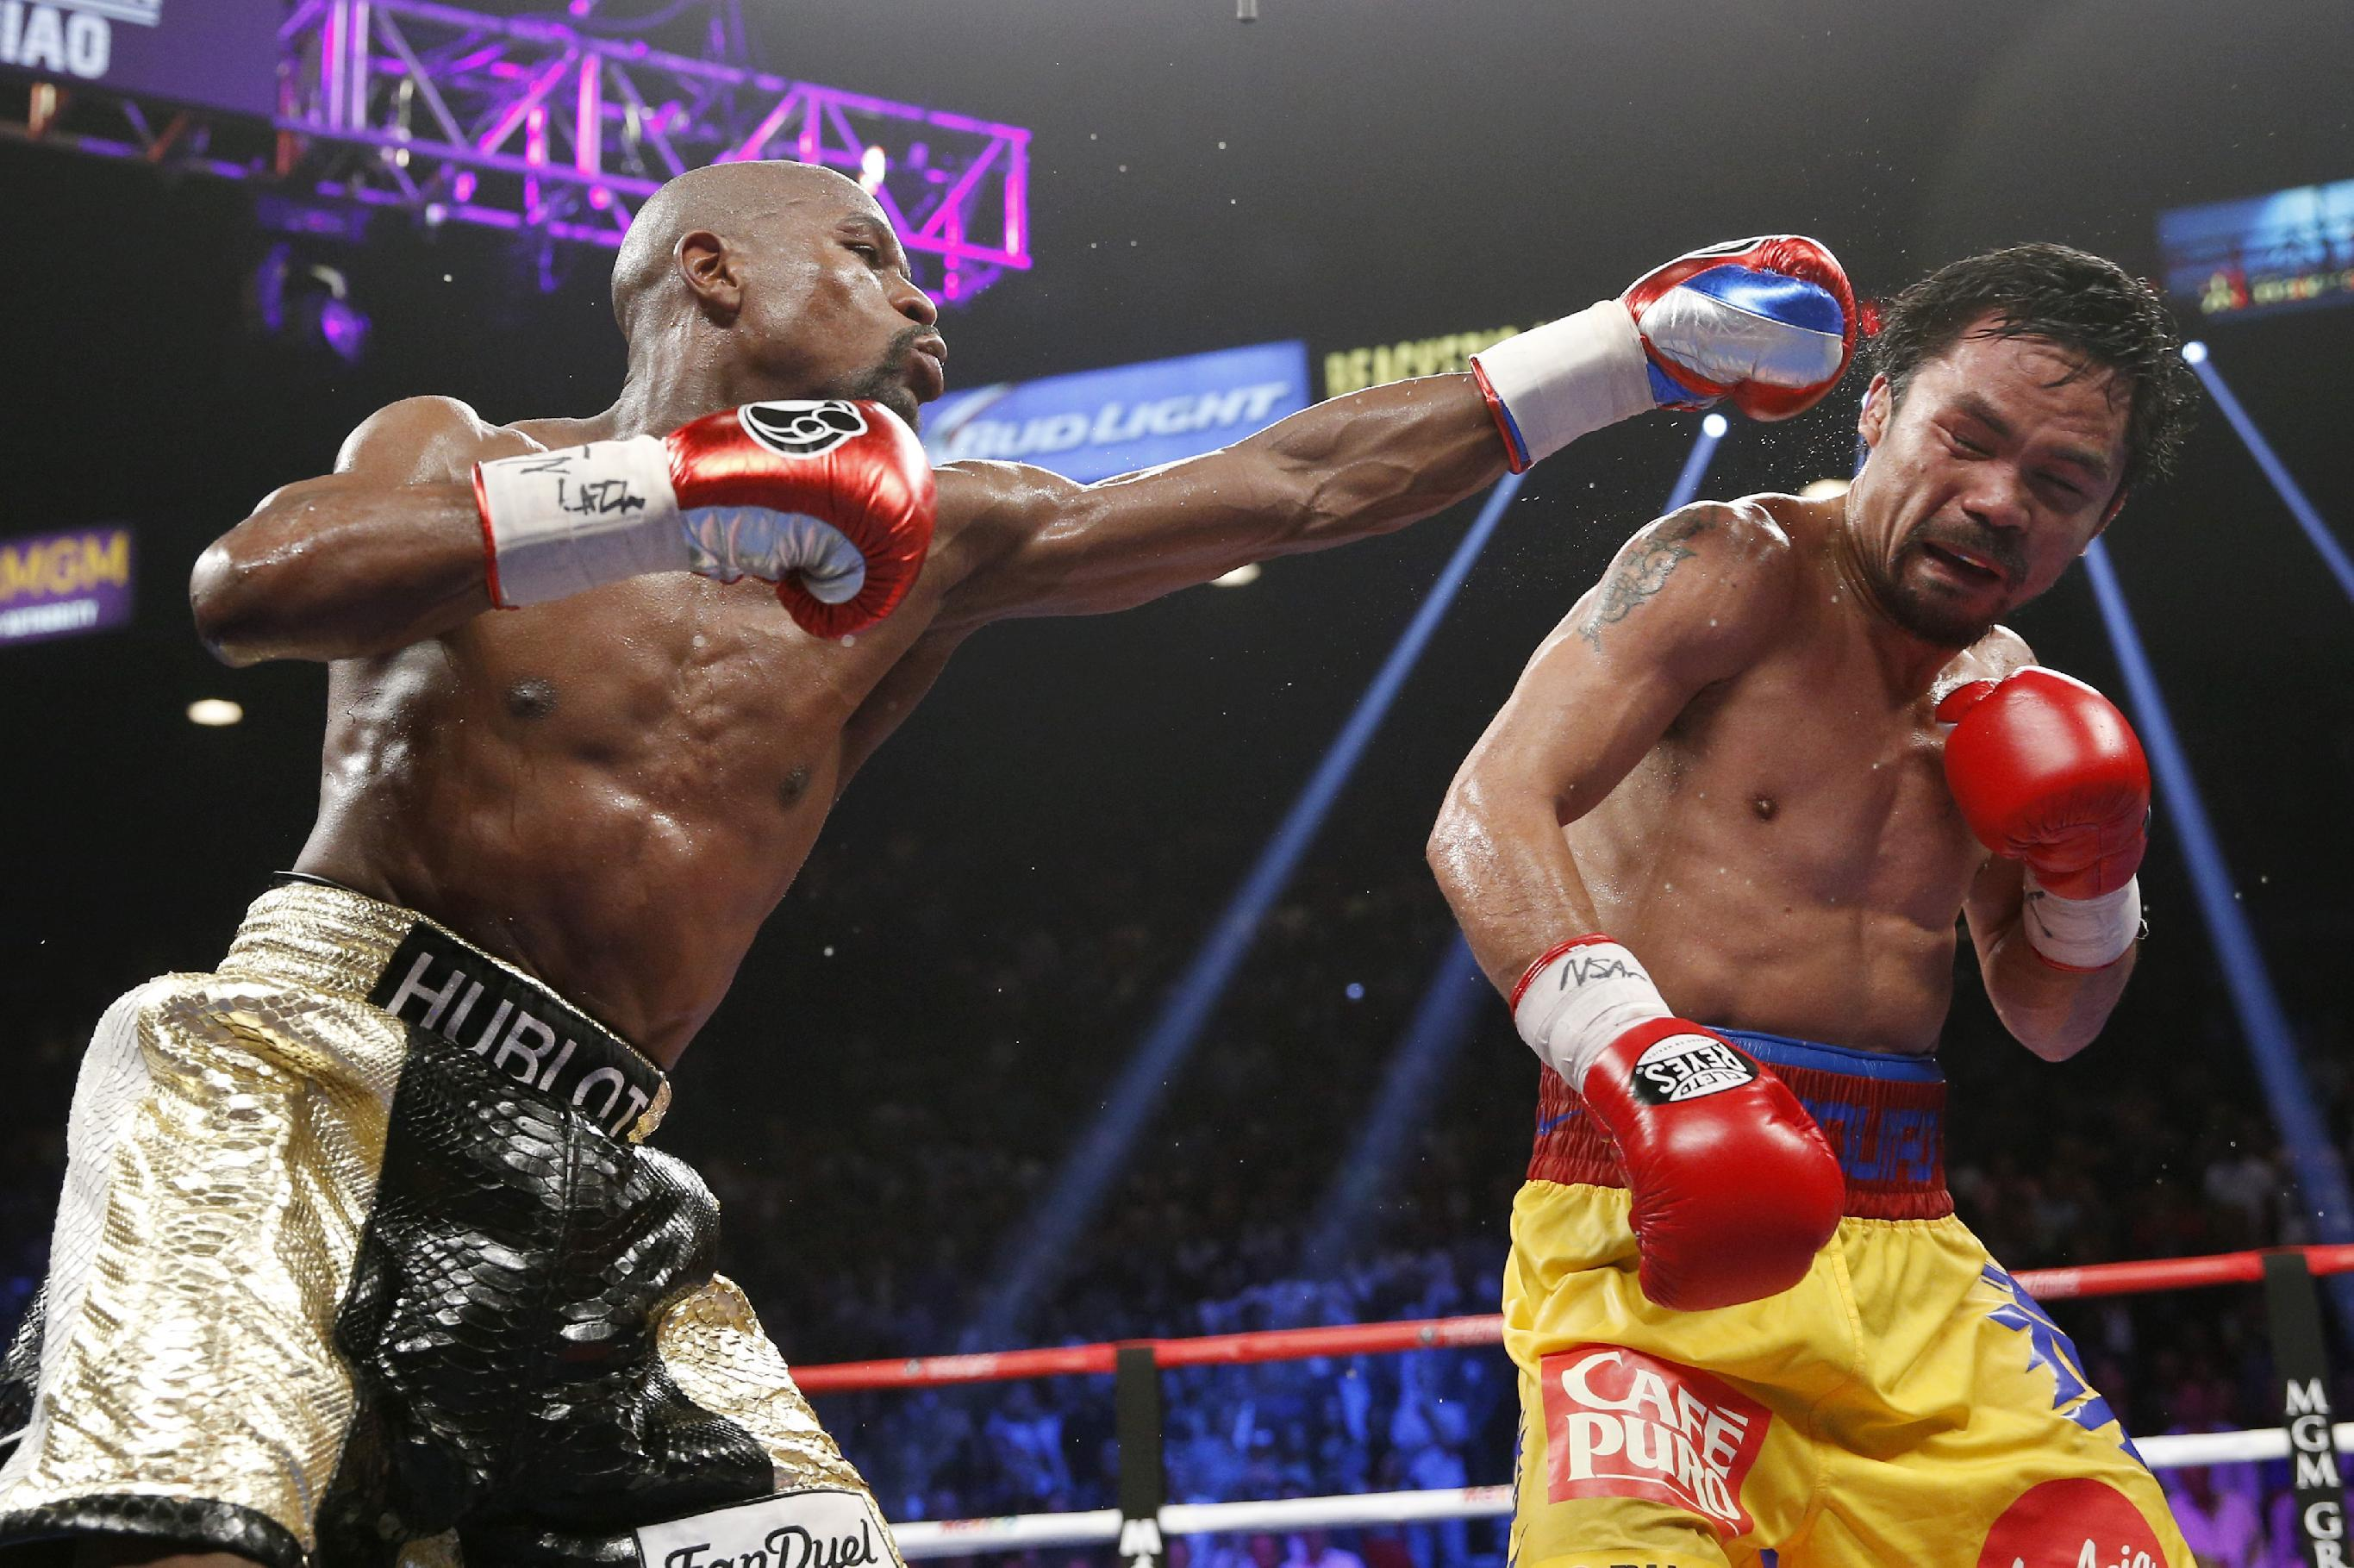 Boxing match pops up on phones as TV habits change